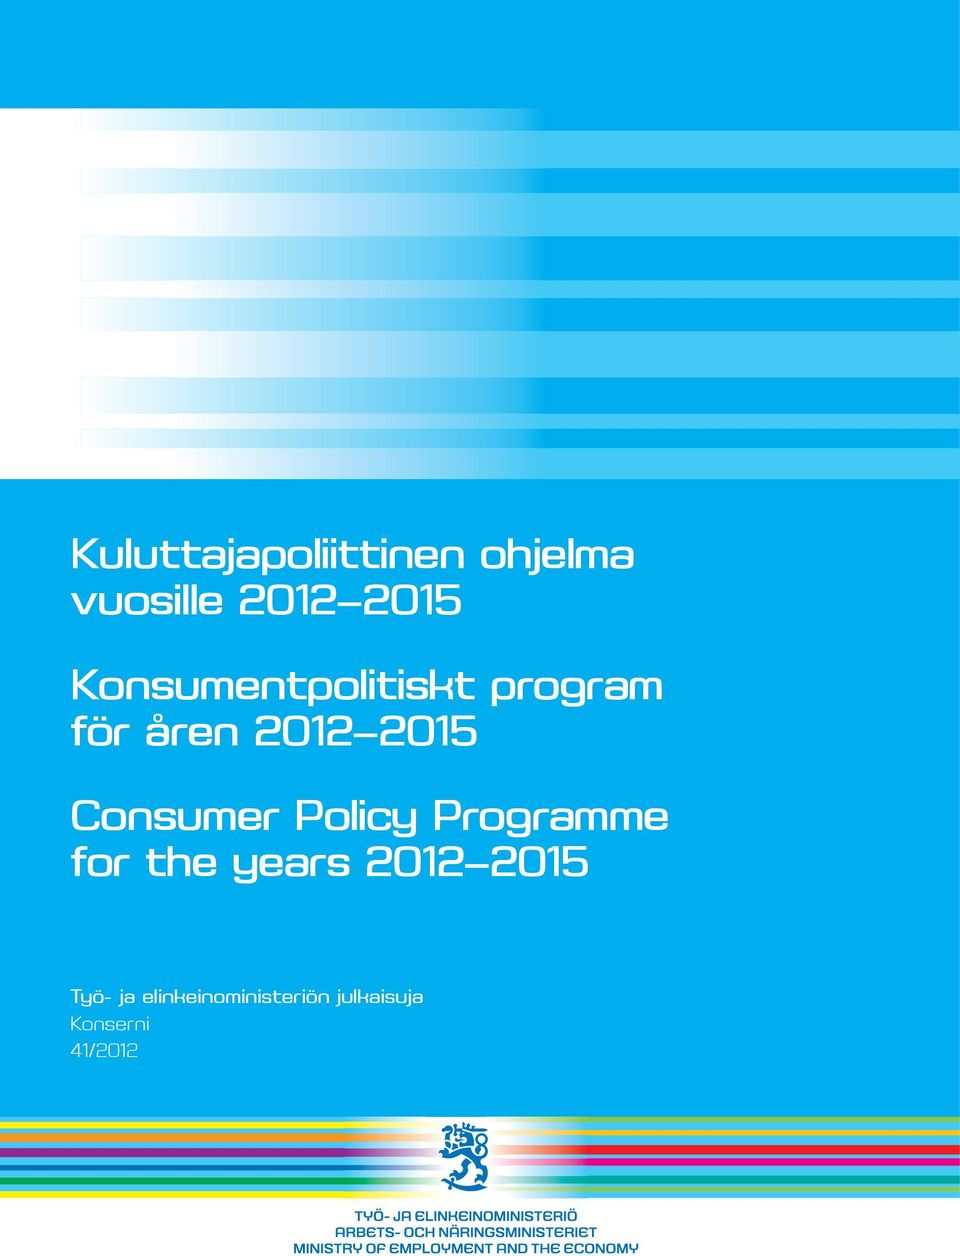 Consumer Policy Programme for the years 2012 2015